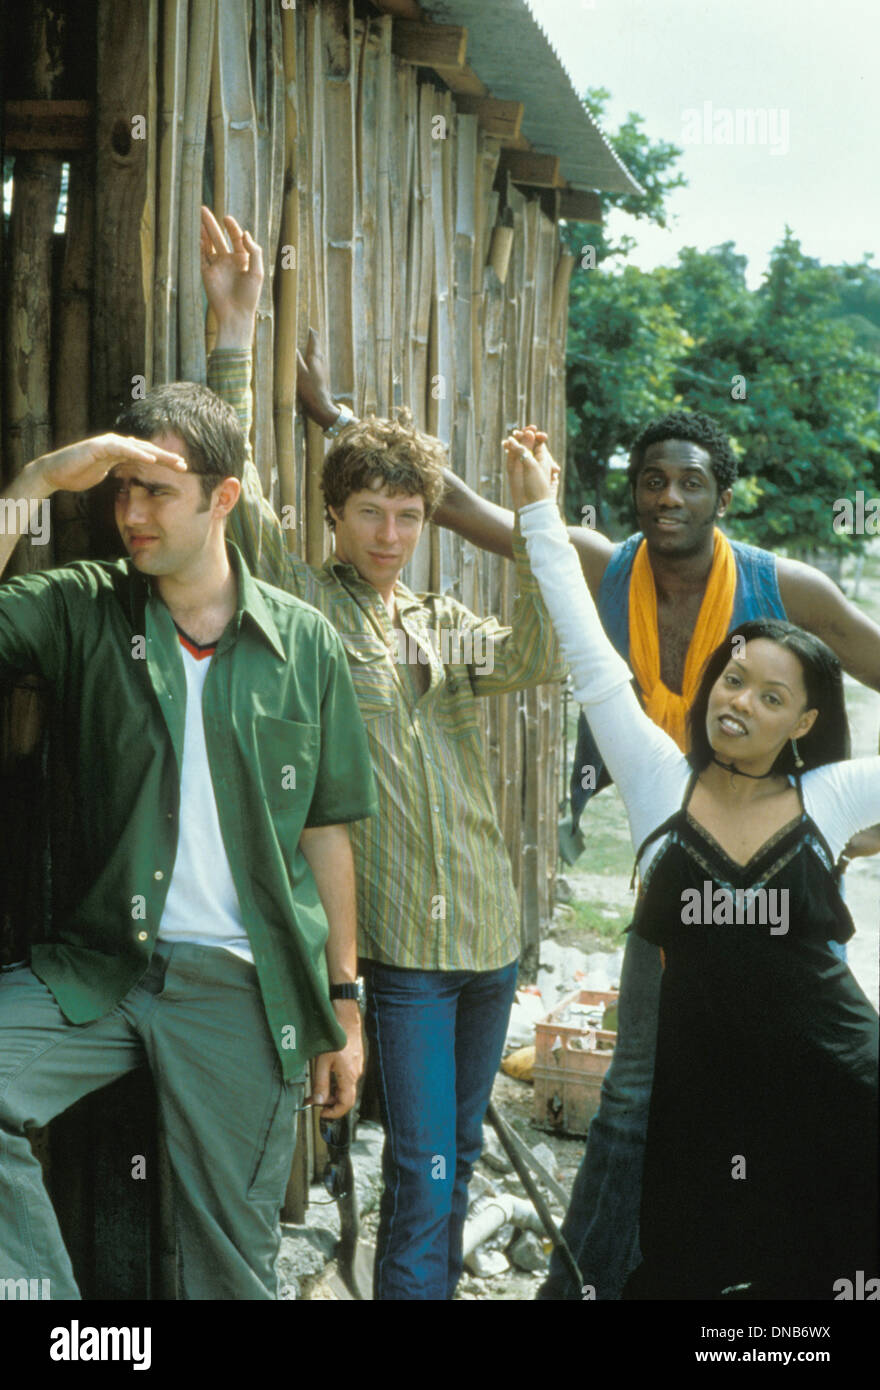 BRAND NEW HEAVIES UK rock group about 1998 with singer Siedah Garrett at right - Stock Image